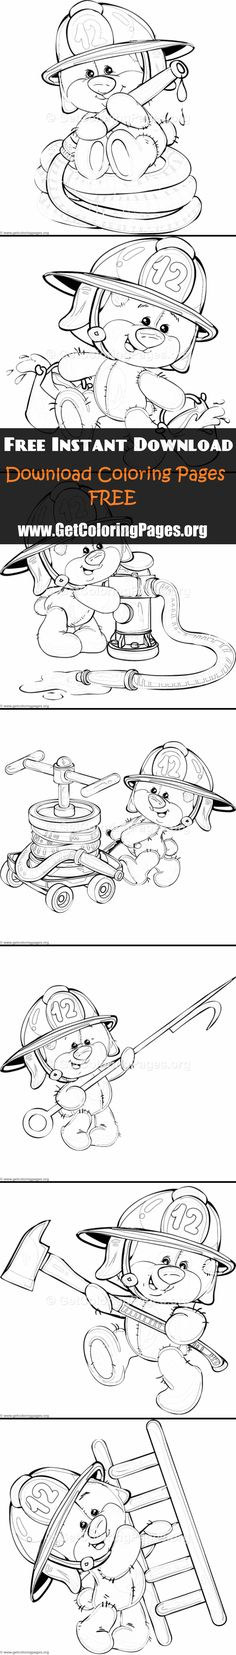 teddy bear firefighter coloring,teddy bear firefighter coloring pages,teddy bear firefighter coloring sheet,teddy bear fireman,teddy bear fireman coloring pages,teddy bear fireman coloring sheet,free teddy bear firefighter coloring pdf,teddy bear coloring pages free printable,bear coloring pages preschool,free bear coloring pages,printable teddy bear template,bear coloring pages for adults,printable firefighter coloring pages,free teddy bear fireman coloring pdf,teddy bear fireman coloring